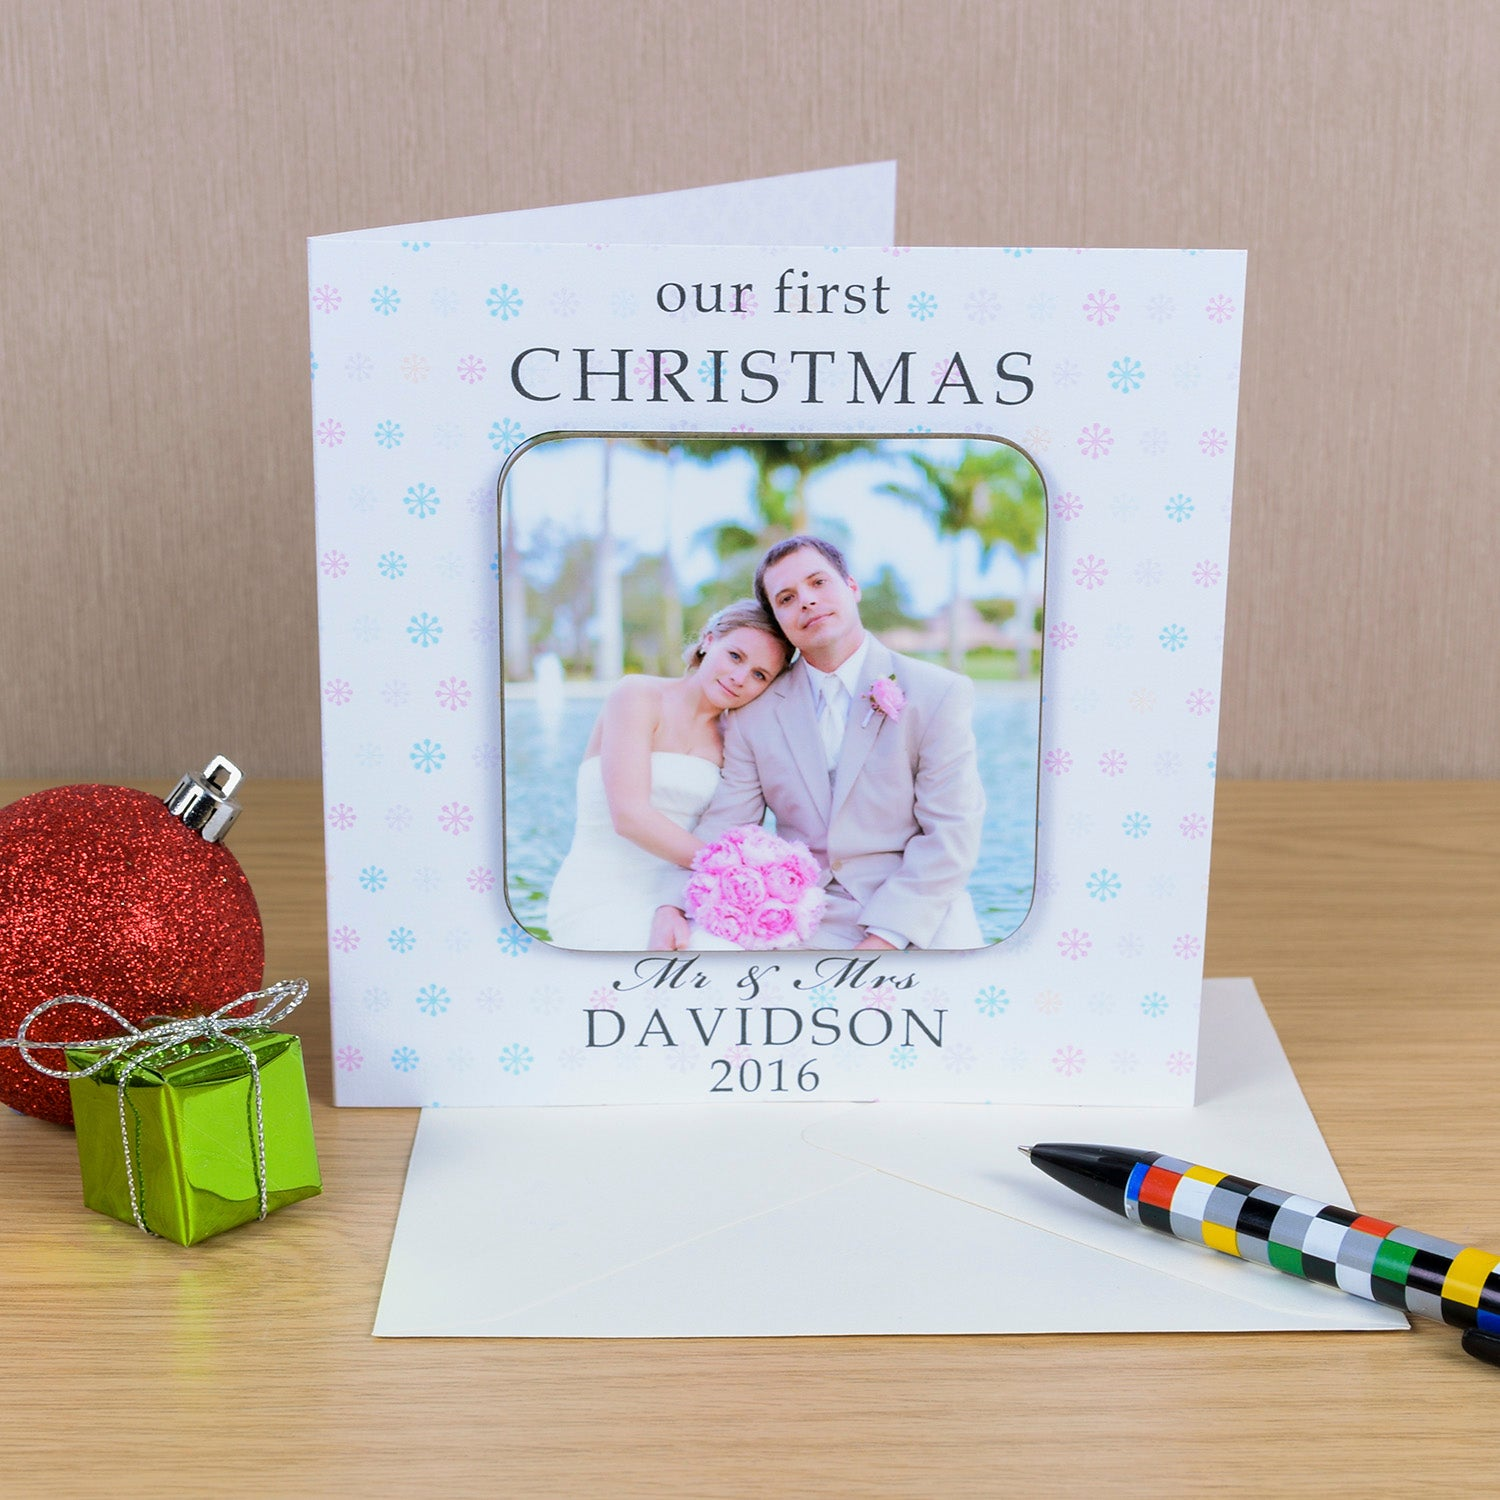 Coaster Card - Photo Upload - Our First Christmas, Home & Garden by Low Cost Gifts